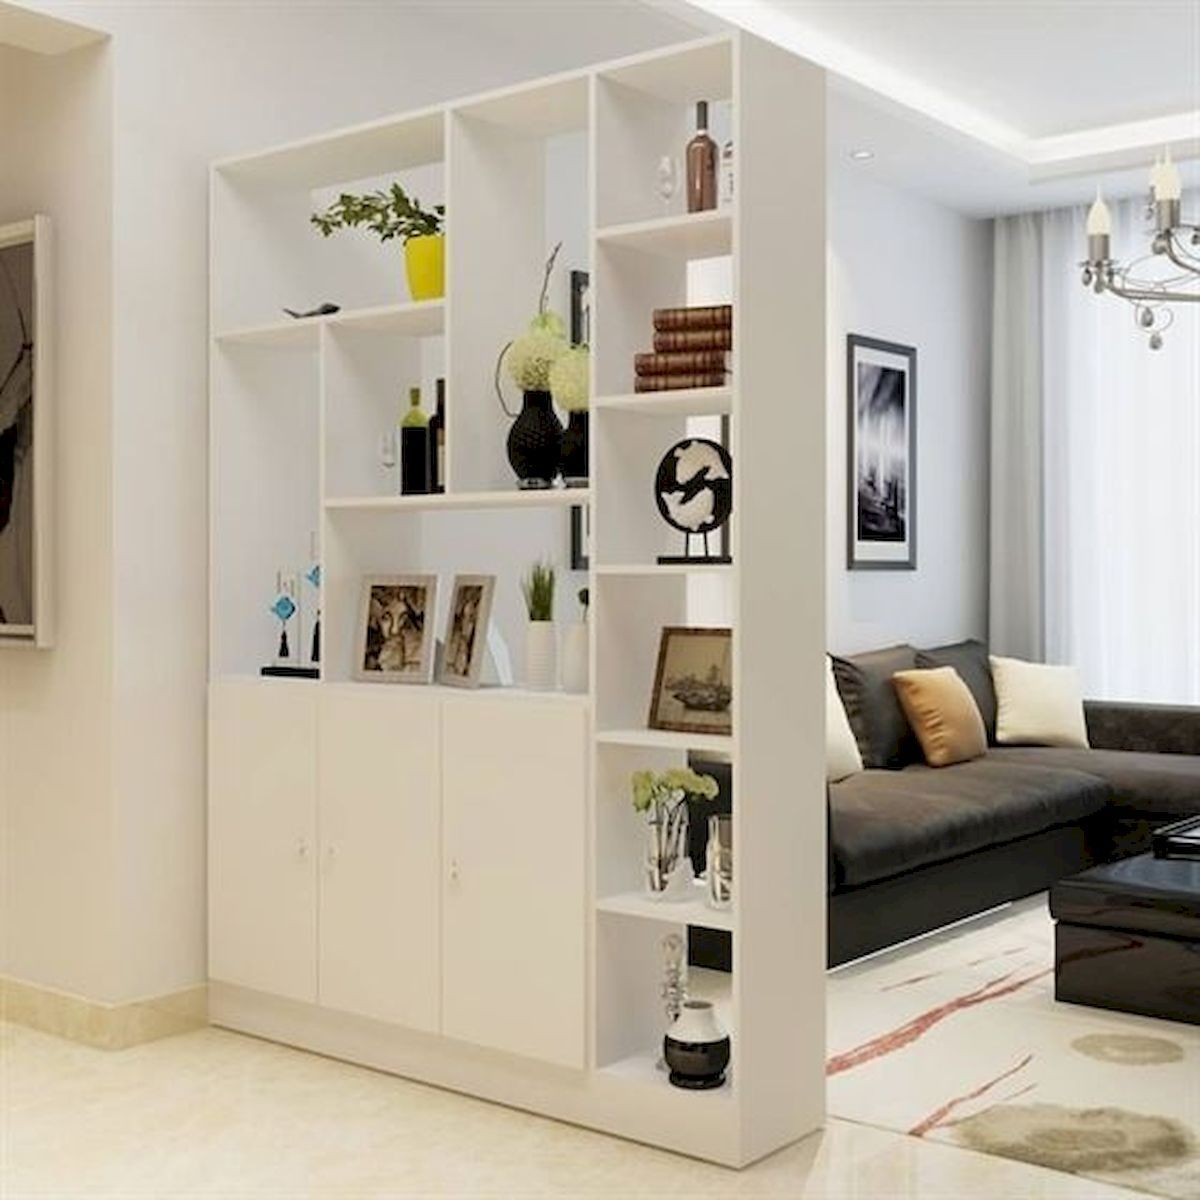 15+ Favorite Studio Apartment Storage Decor Ideas And Remodel